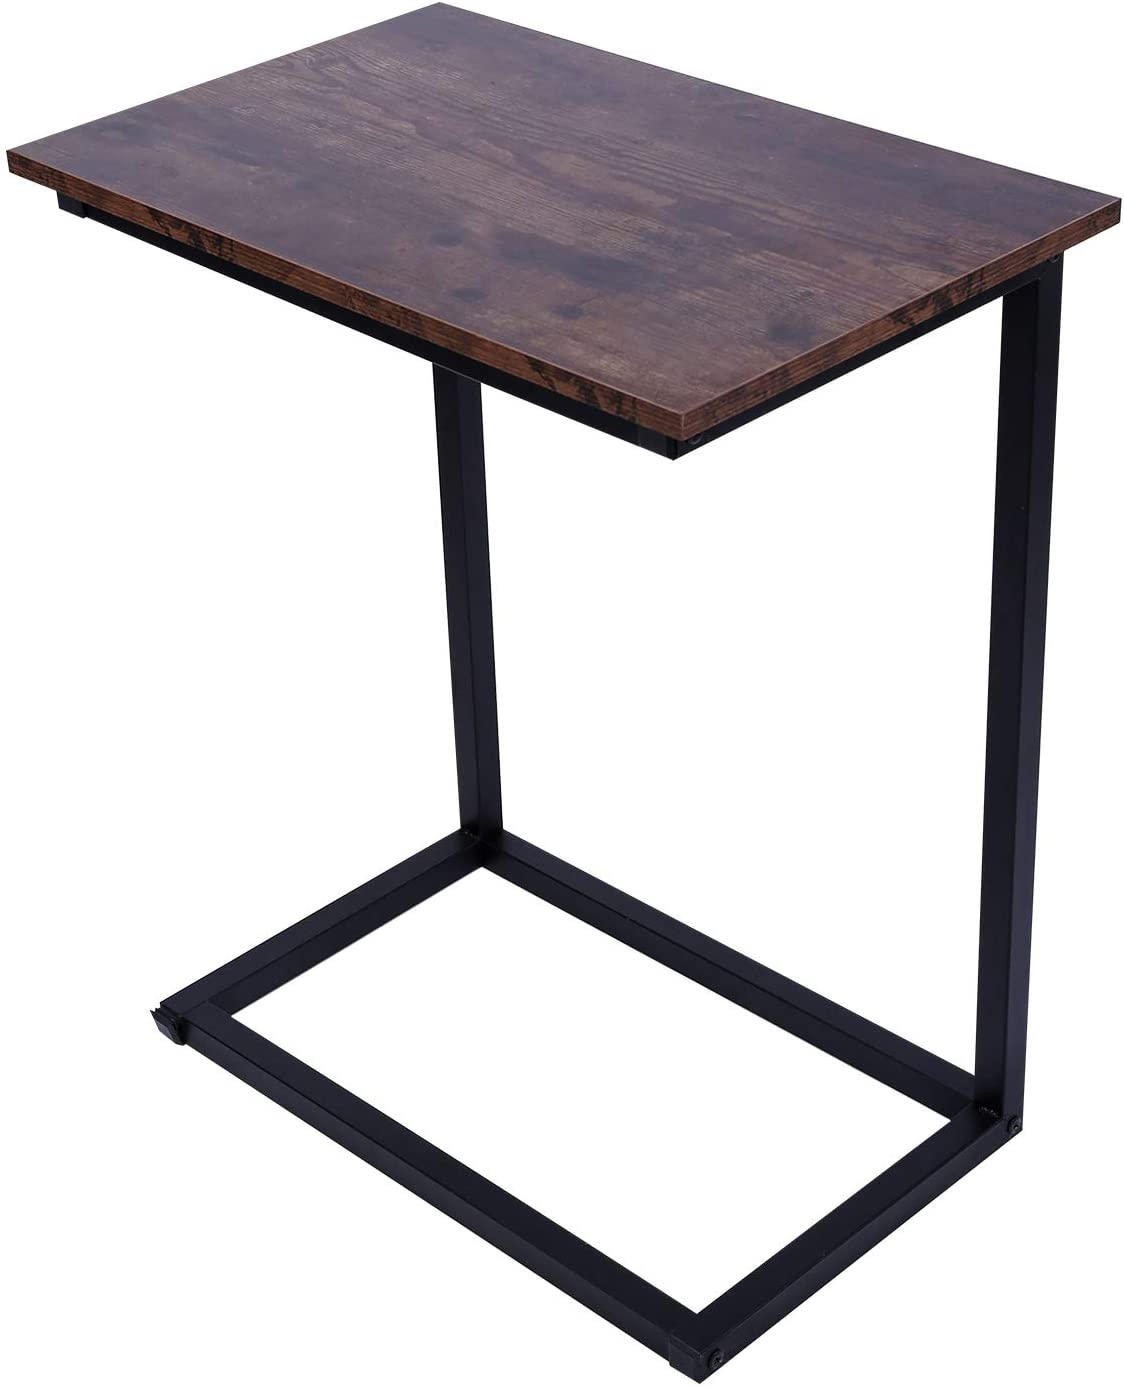 "REDCAMP C Shaped Side Table for Sofa Living Room, 26"" Tall Sturdy Metal Wood Laptop Table for Couch Snack Coffee TV Tray, Brown"